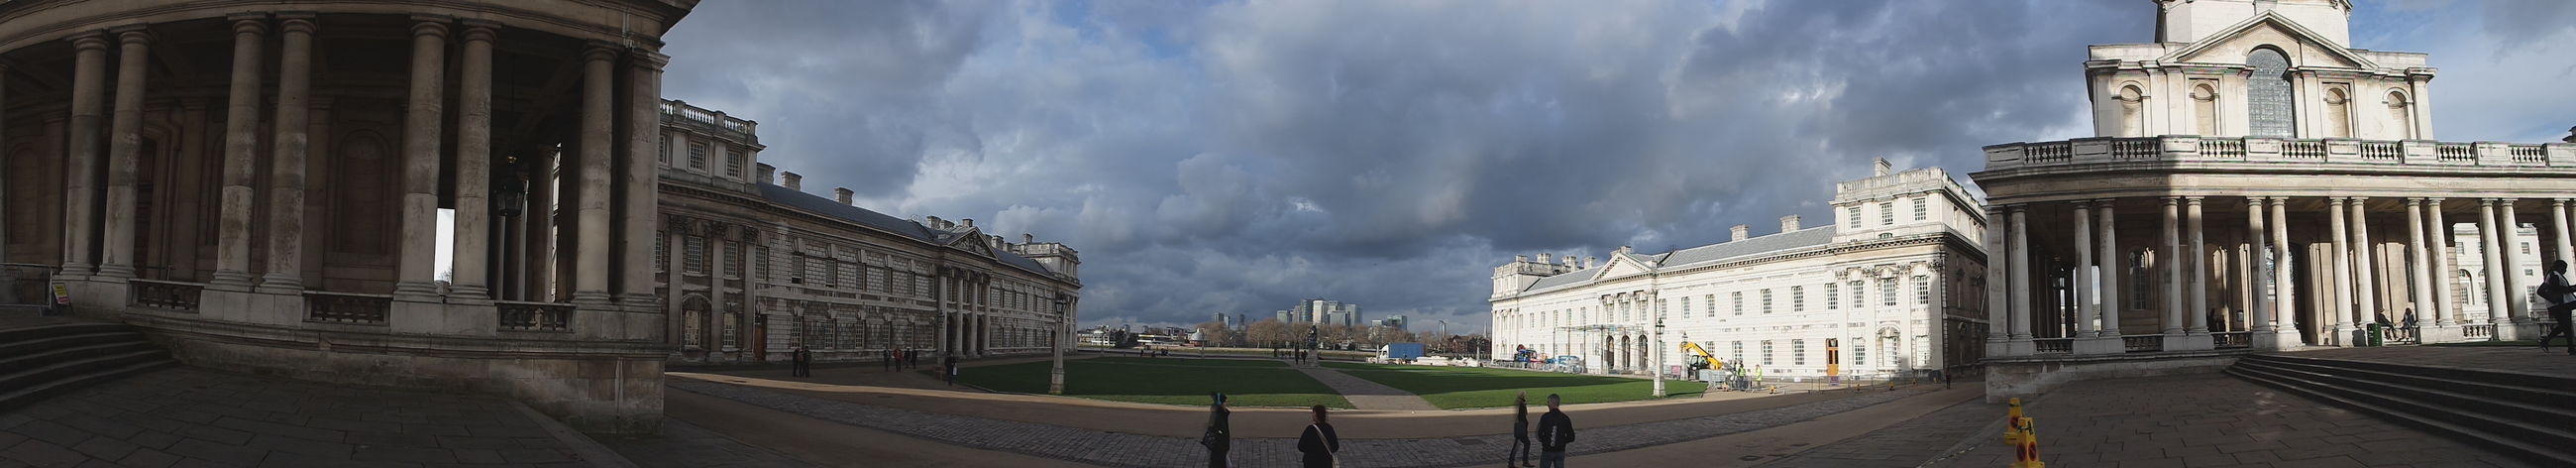 London No Filters  No Edit Needed Greenwich Naval College 21st Birthday! Panoramic Photography